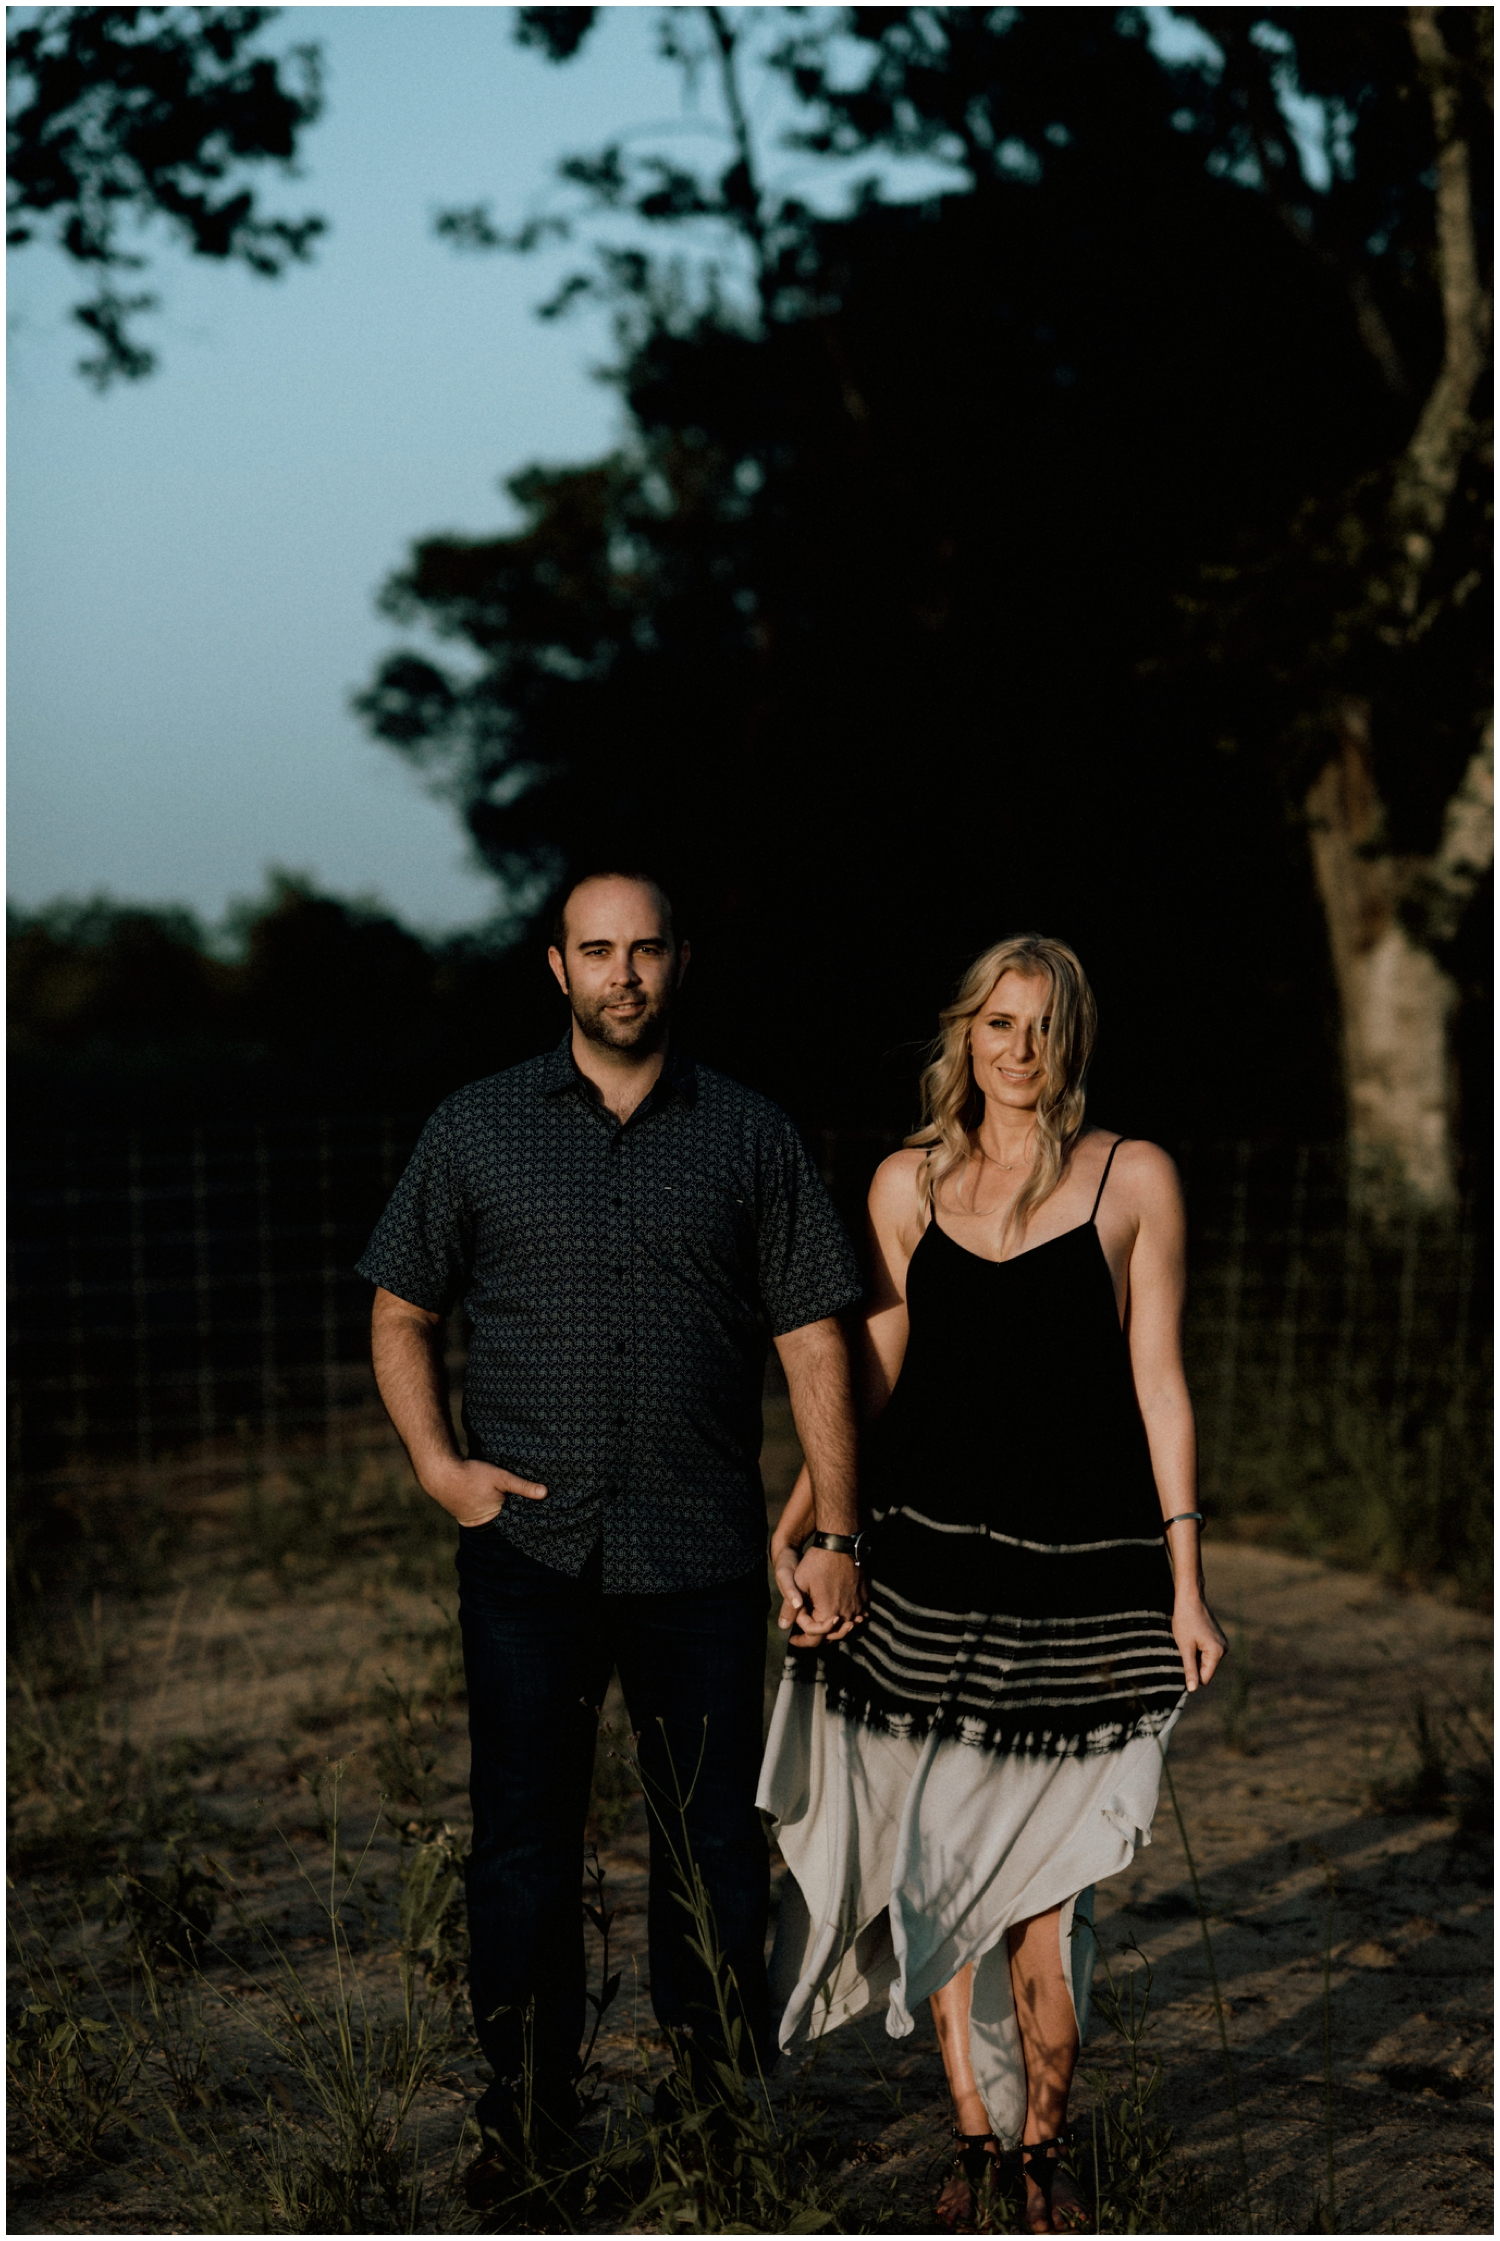 Couple Photographer in Texas